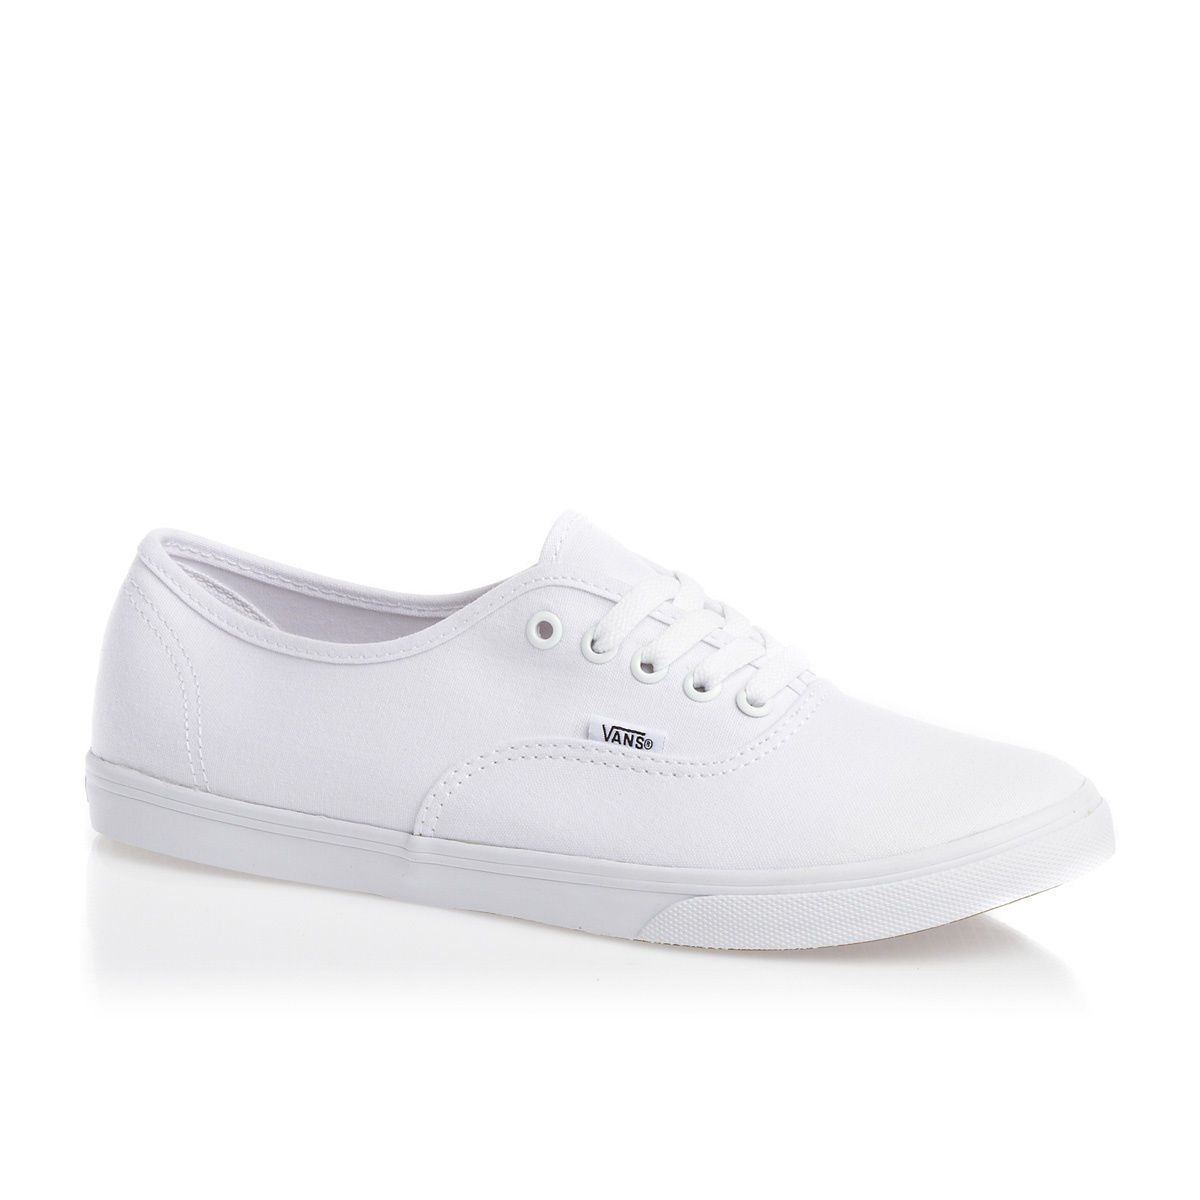 Vans Authentic Lo Pro Womens Shoes - True White | Free UK Delivery ...